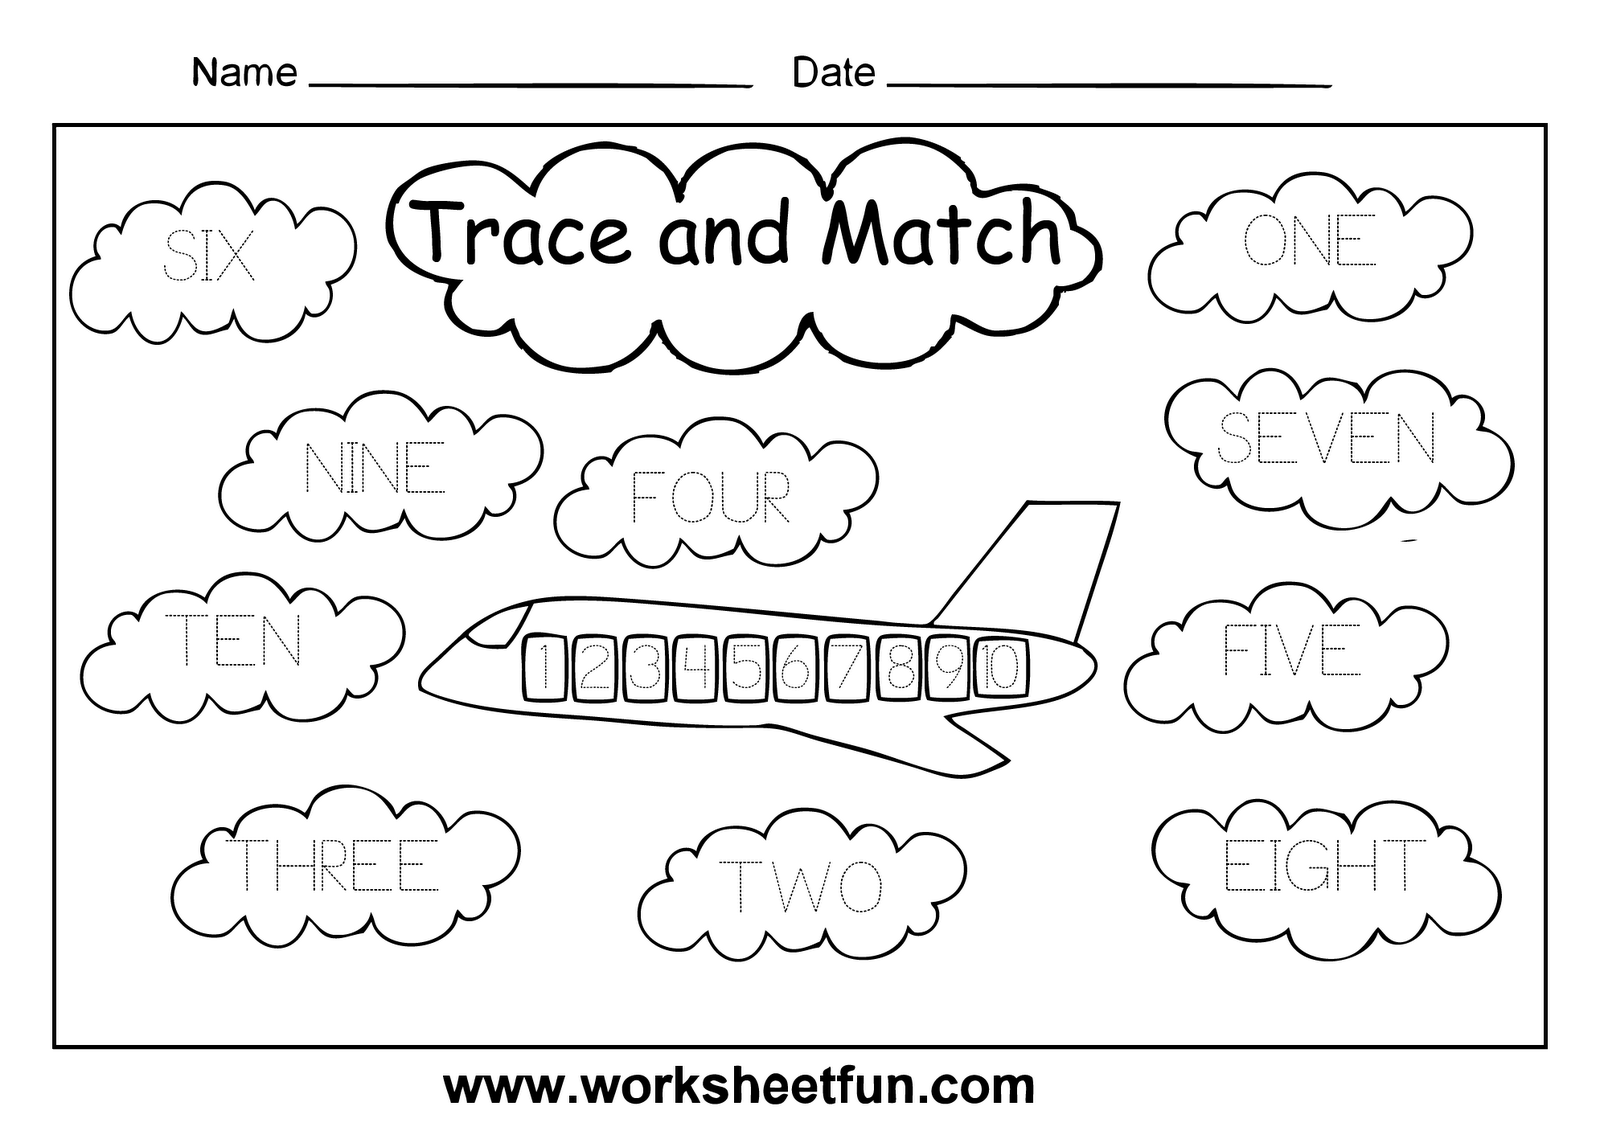 Weirdmailus  Scenic Worksheet Numbers    Reocurent With Gorgeous Zero Property Of Multiplication Worksheet Besides Ten Commandment Worksheets Furthermore Bible Worksheets For Preschoolers With Extraordinary Mixed Numbers And Improper Fractions Worksheets Also  Step Equations Word Problems Worksheet In Addition Origami Worksheets And Angles Of Depression And Elevation Worksheet Answers As Well As Rules For Adding And Subtracting Integers Worksheet Additionally Equipment Inspection And Maintenance Worksheet From Reocurentcom With Weirdmailus  Gorgeous Worksheet Numbers    Reocurent With Extraordinary Zero Property Of Multiplication Worksheet Besides Ten Commandment Worksheets Furthermore Bible Worksheets For Preschoolers And Scenic Mixed Numbers And Improper Fractions Worksheets Also  Step Equations Word Problems Worksheet In Addition Origami Worksheets From Reocurentcom